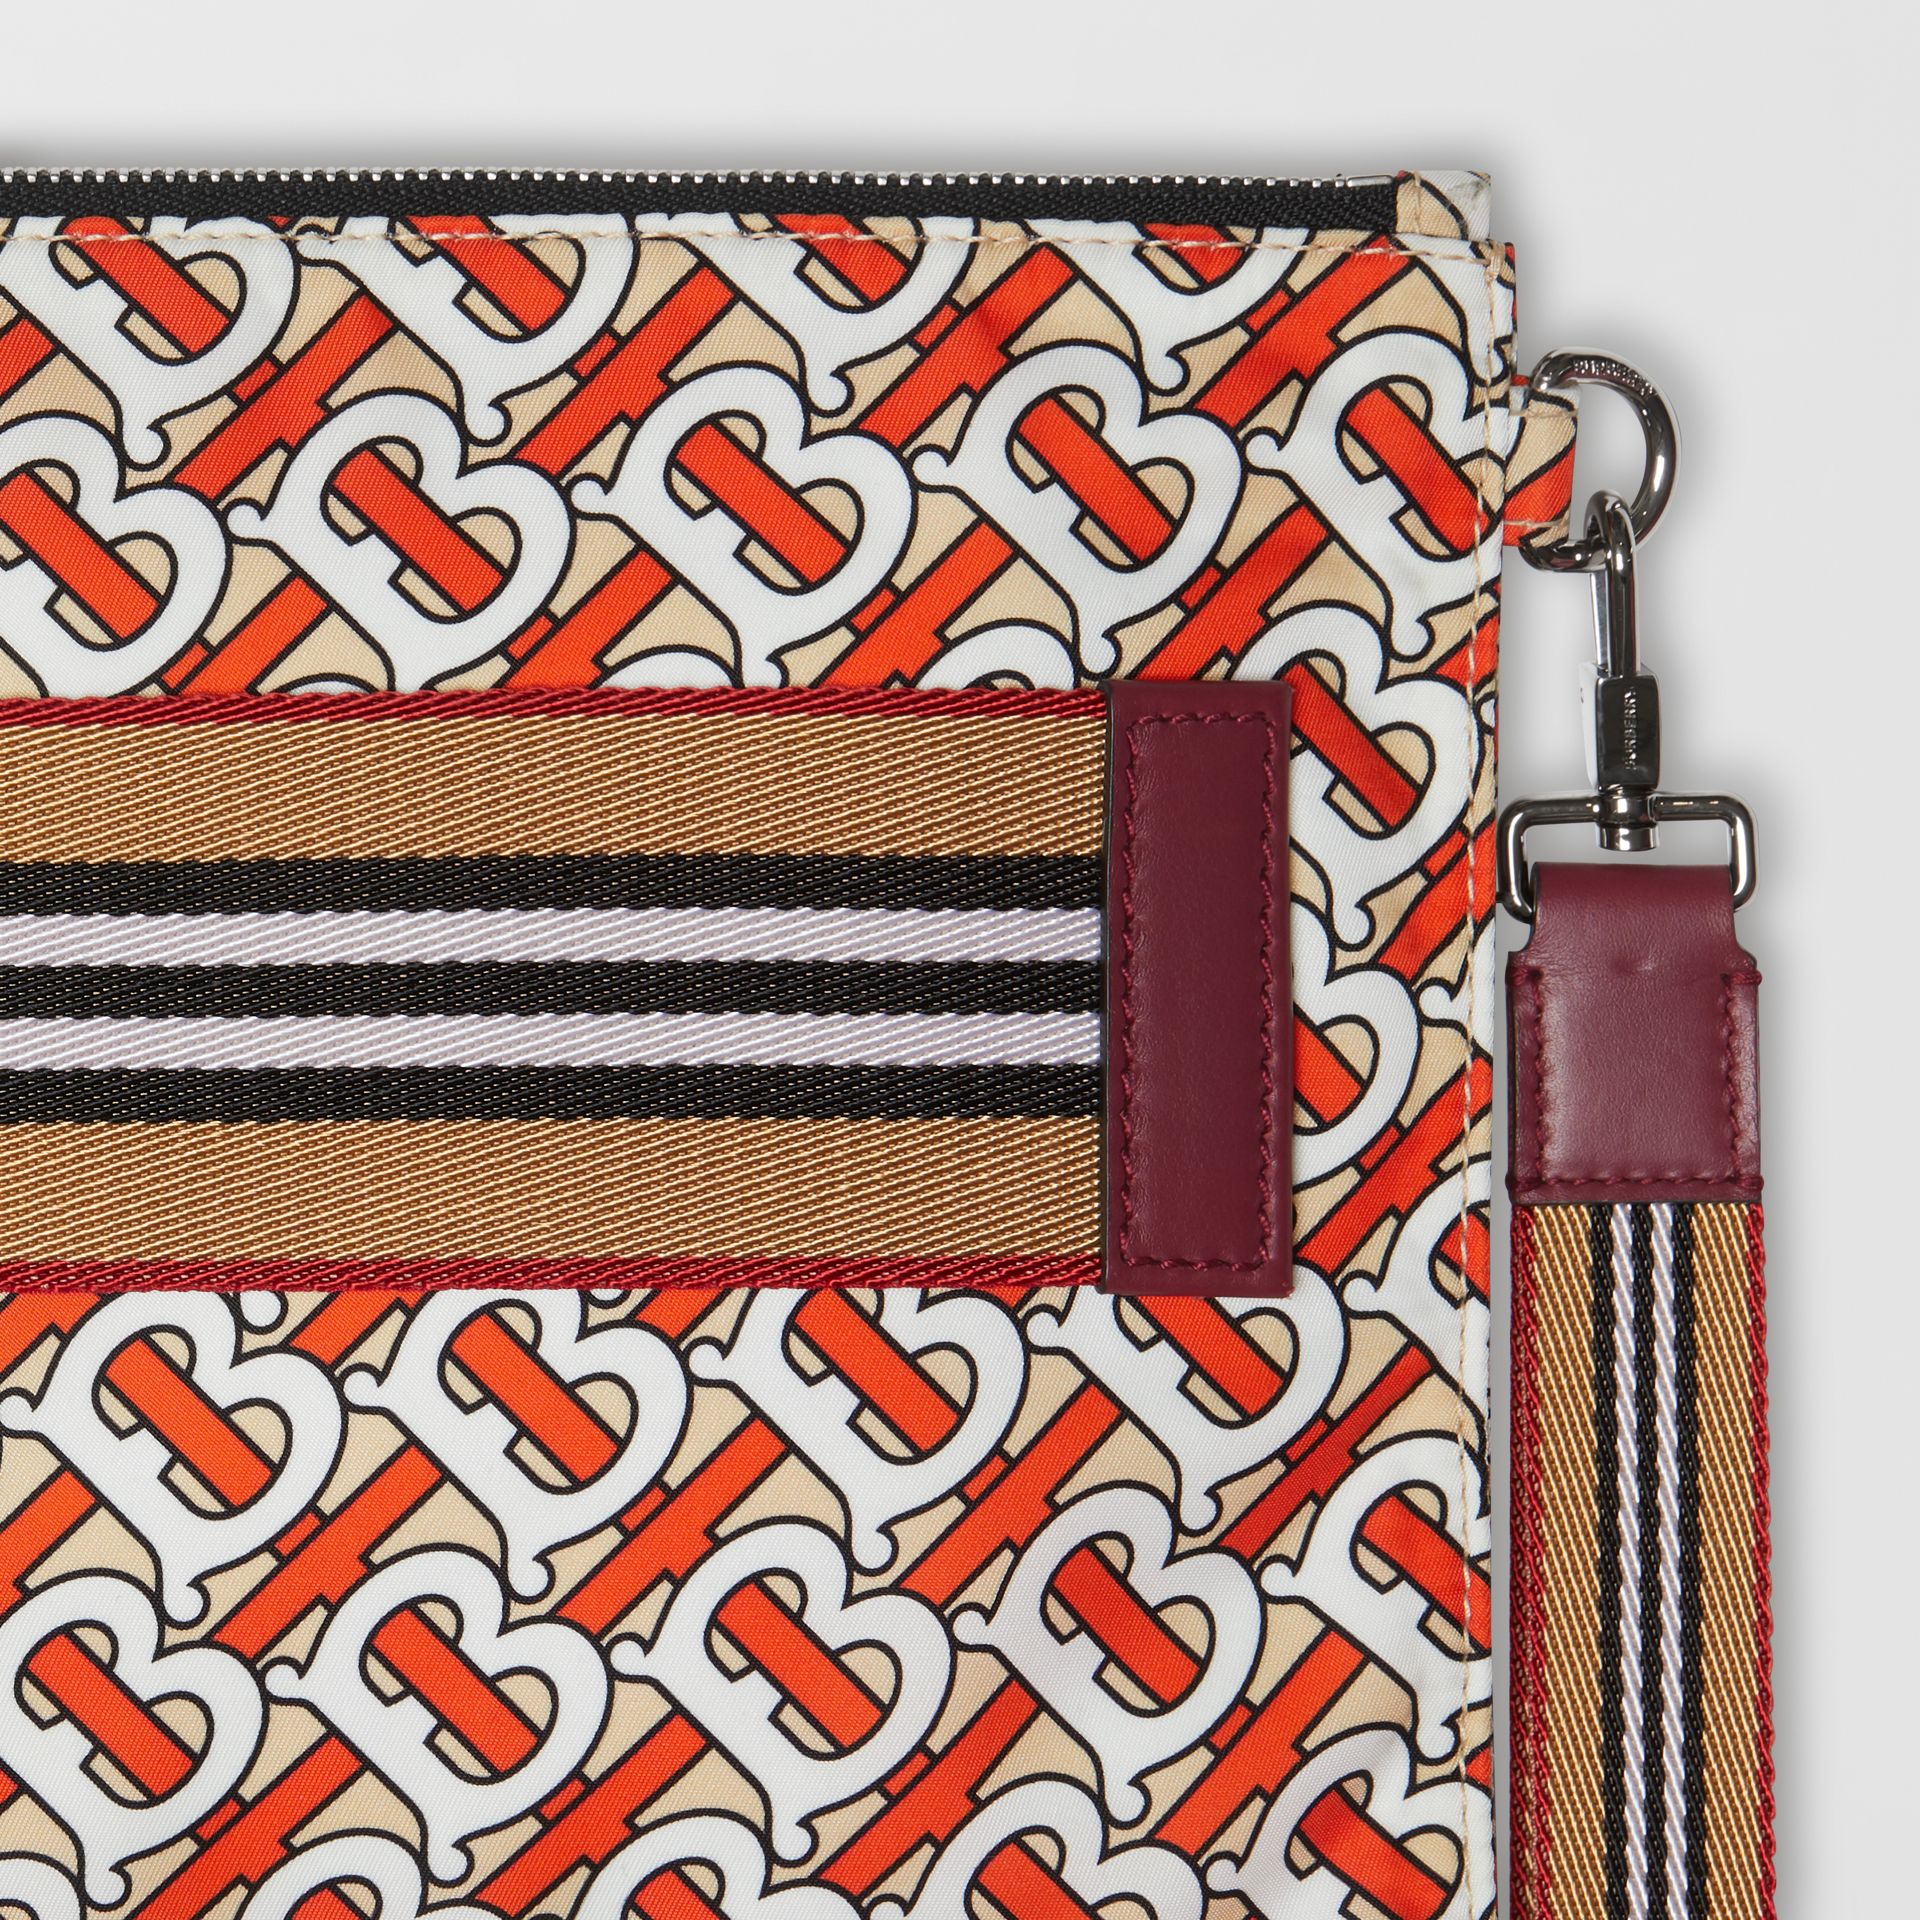 Monogram Print Zip Pouch in Vermilion | Burberry - gallery image 1